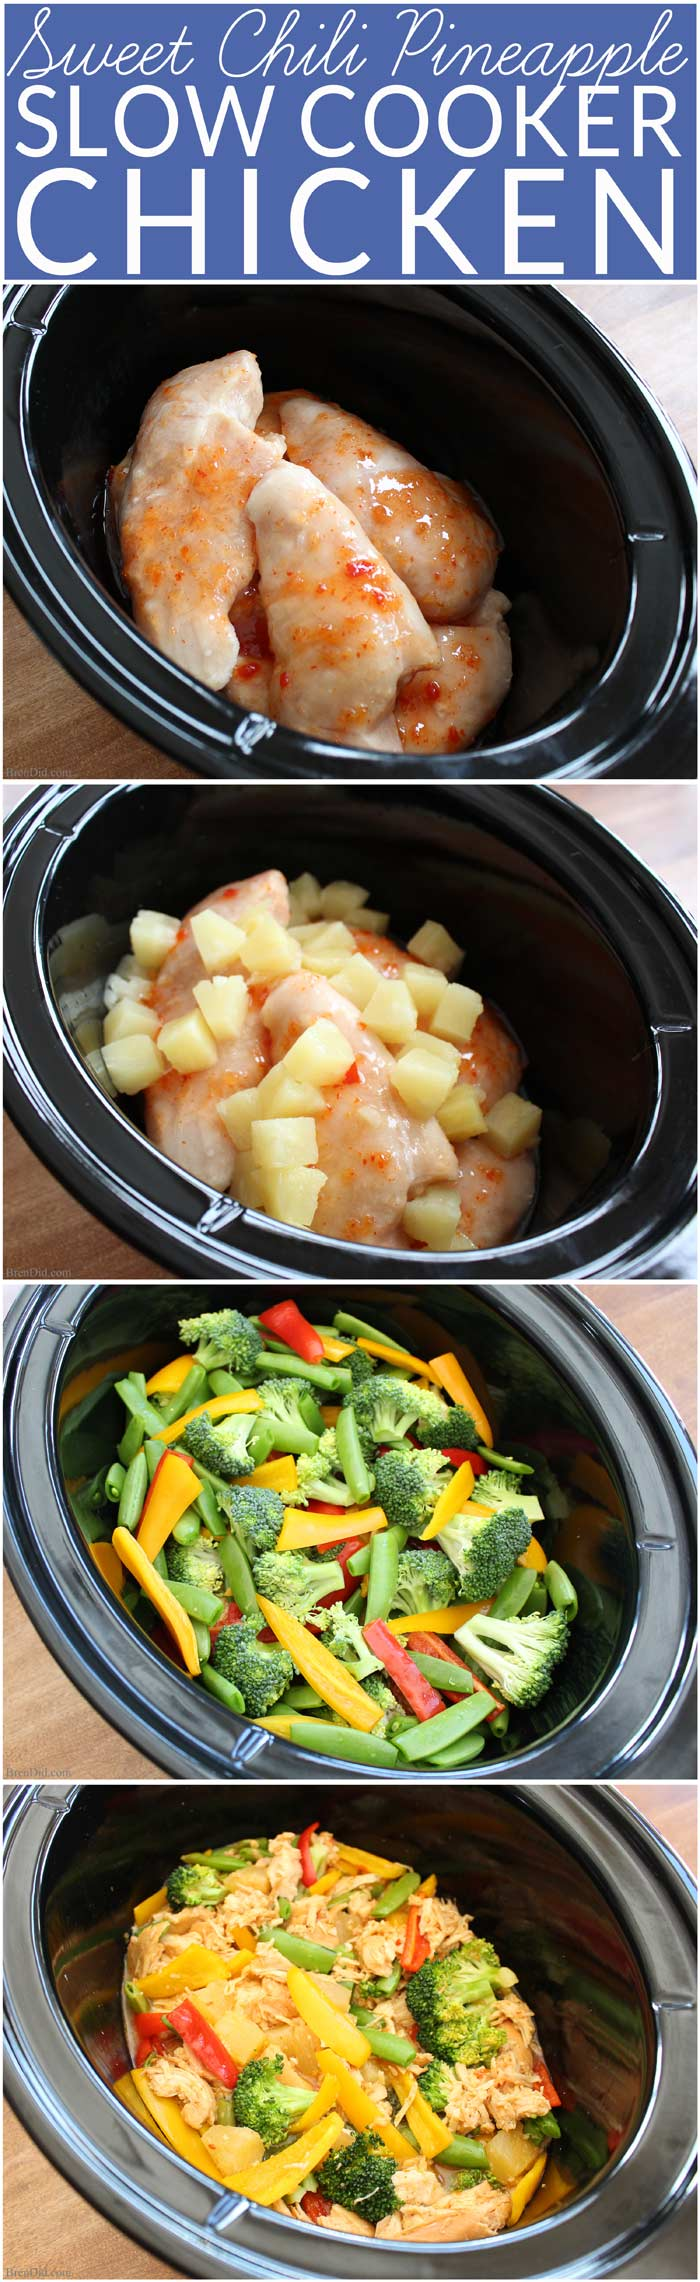 Sweet Chili Pineapple Chicken Easy Crockpot Recipe Bren Did